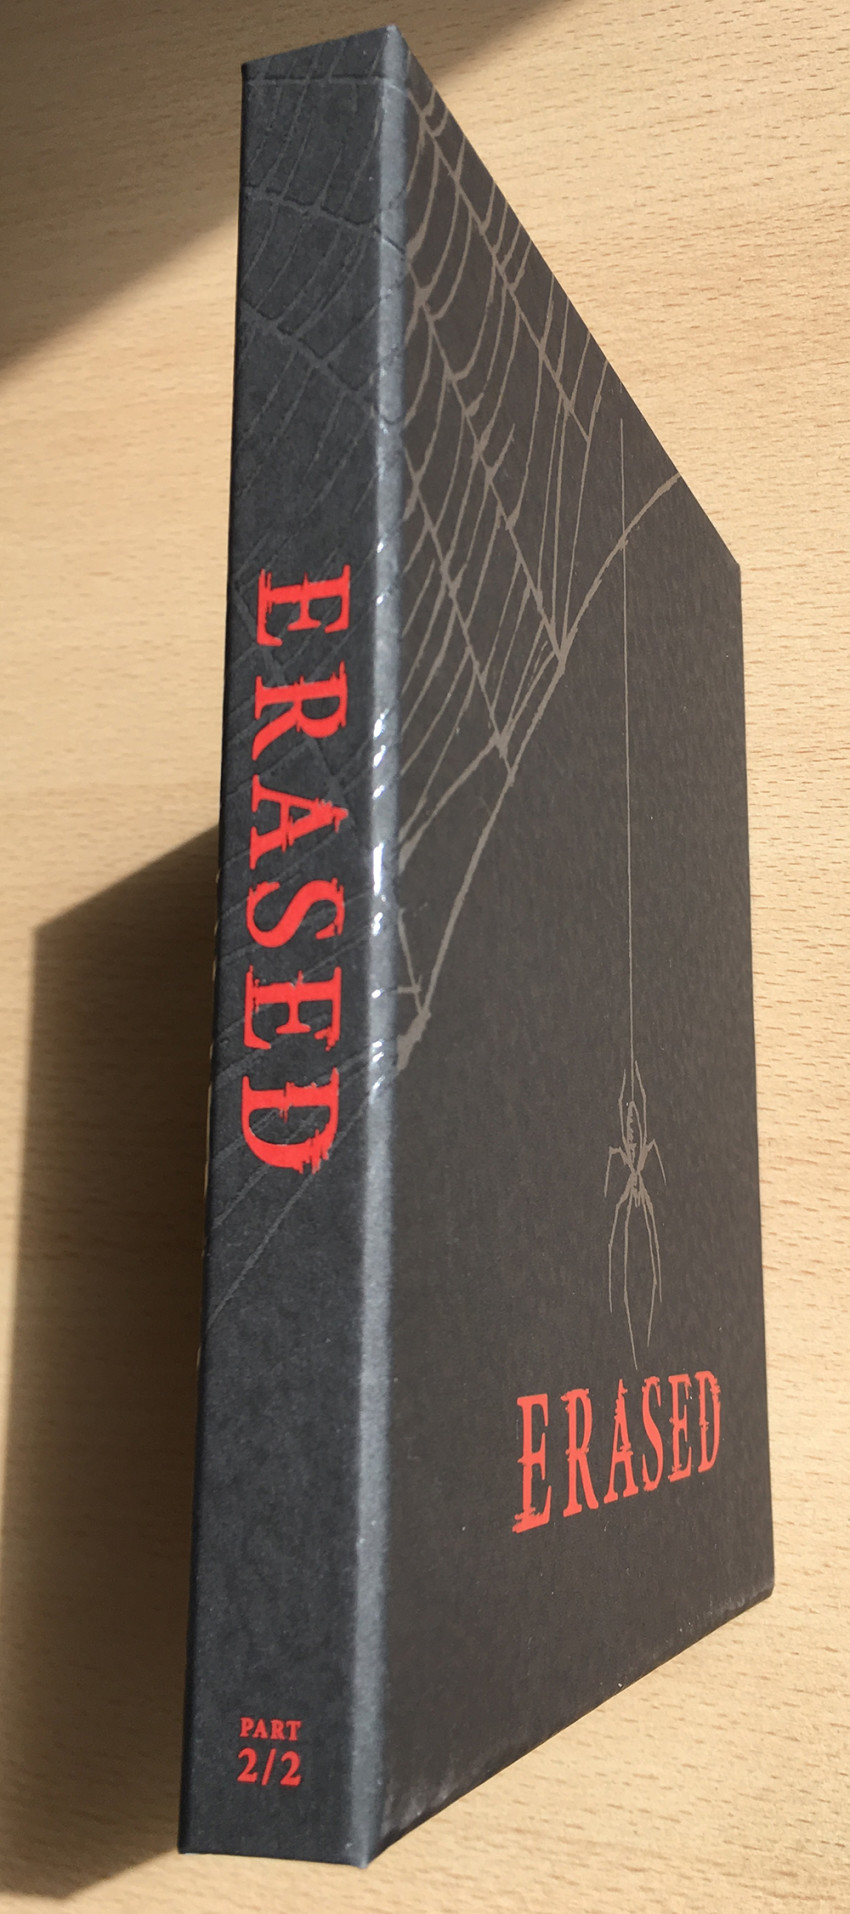 The spine of the rigid case boasts the series title